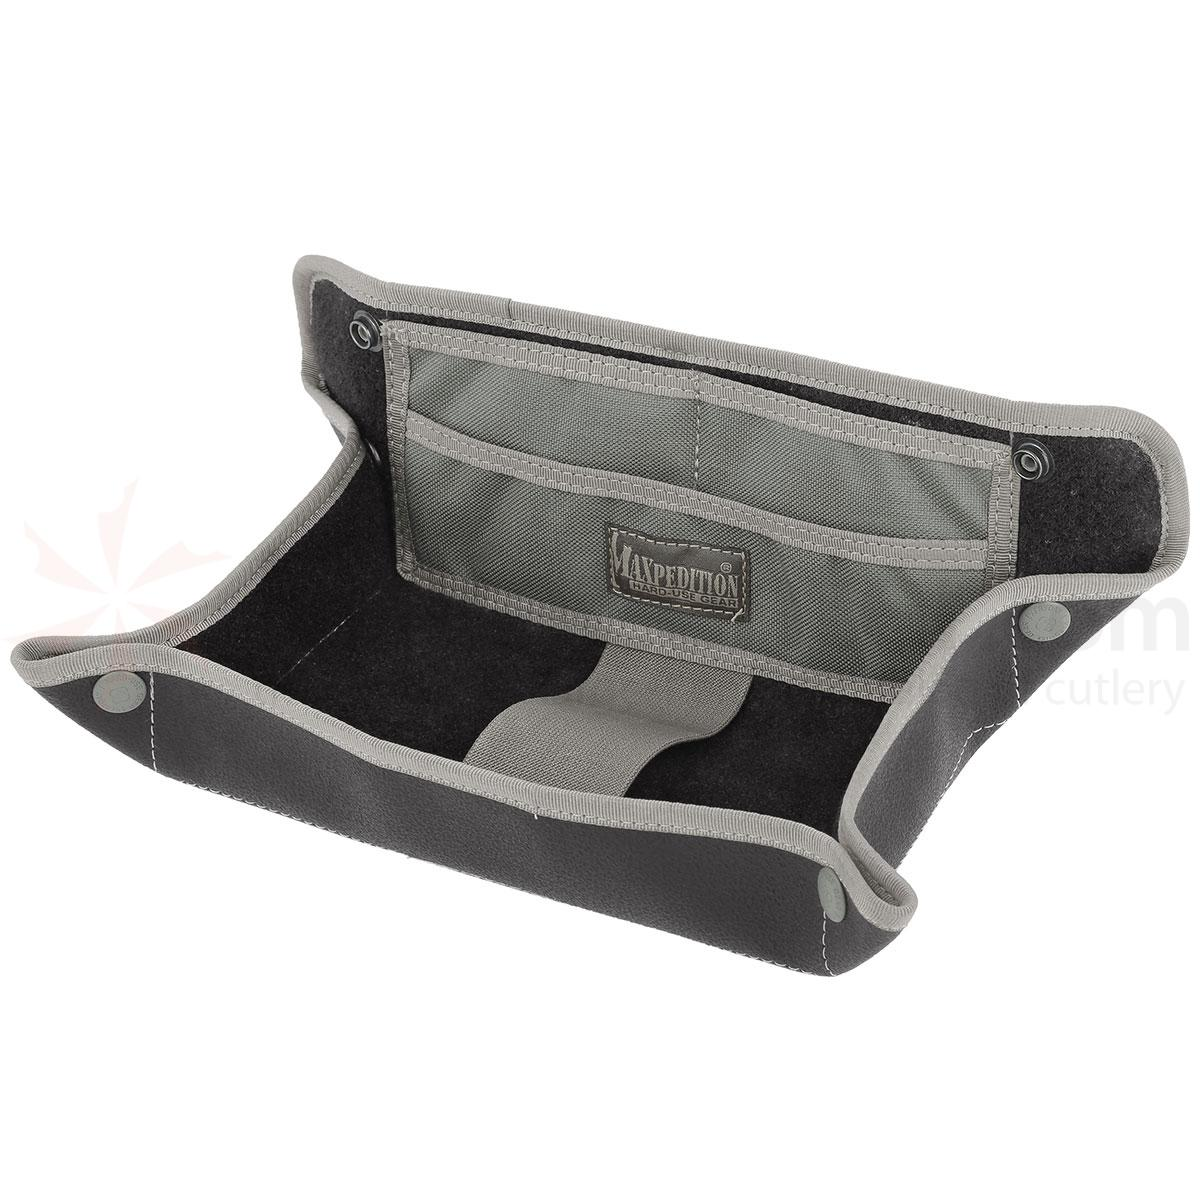 Maxpedition 1805F Tactical Travel Valet Tray, Foliage Green